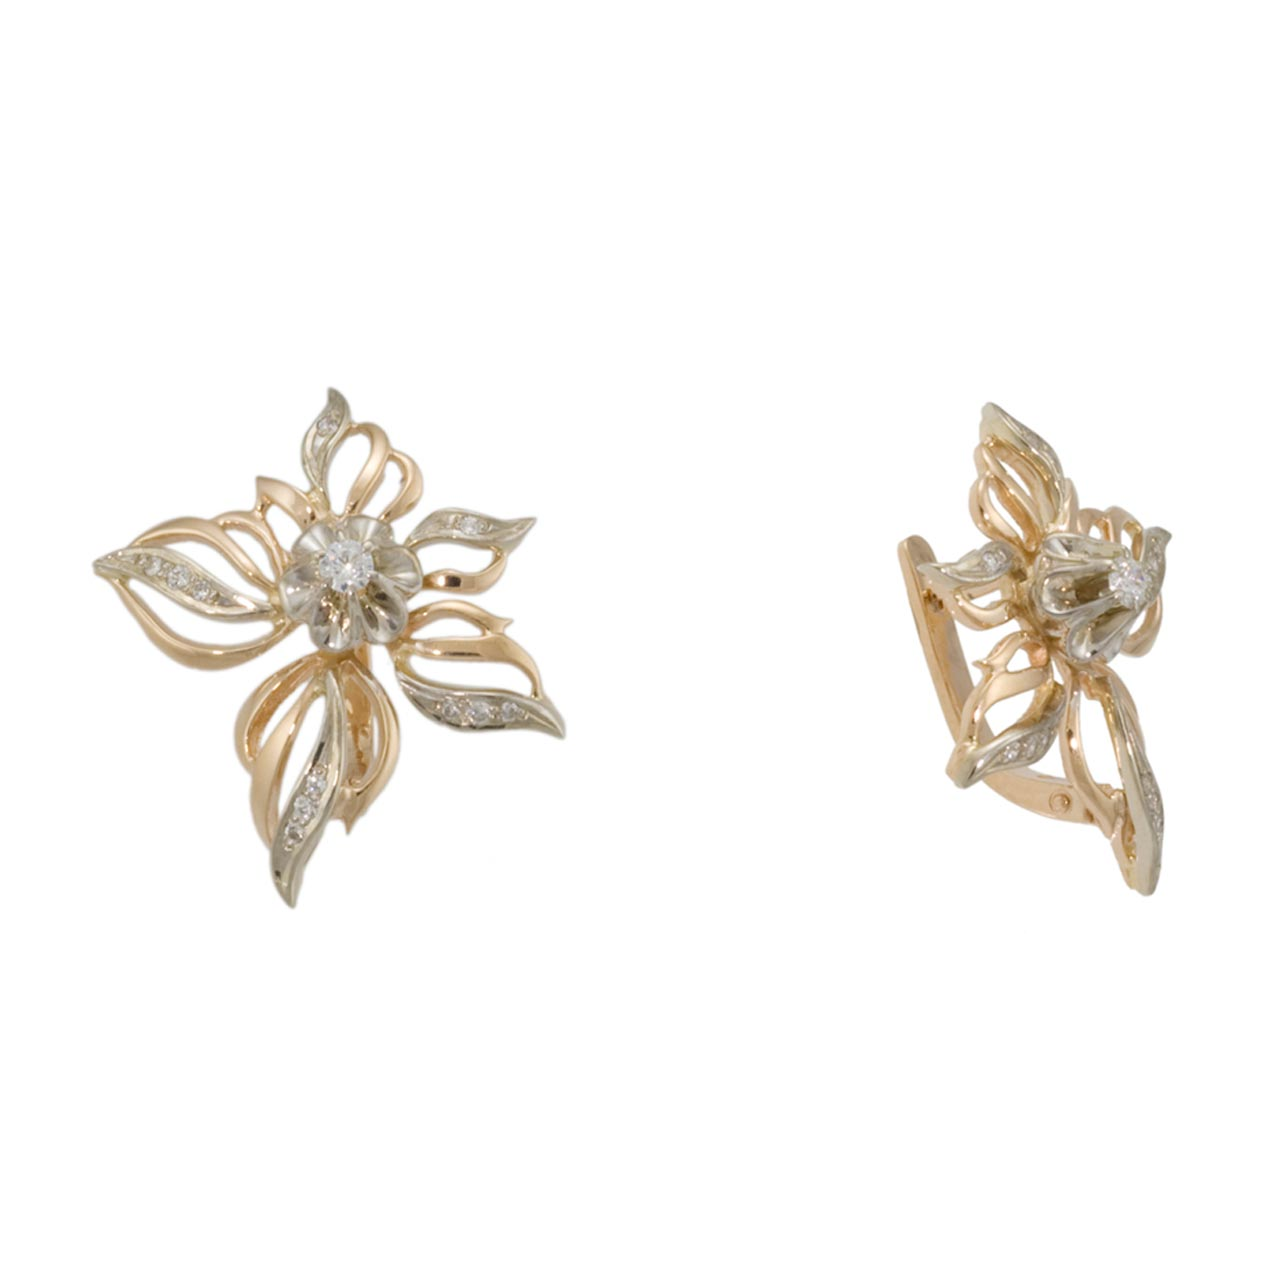 Rose and white gold earrings